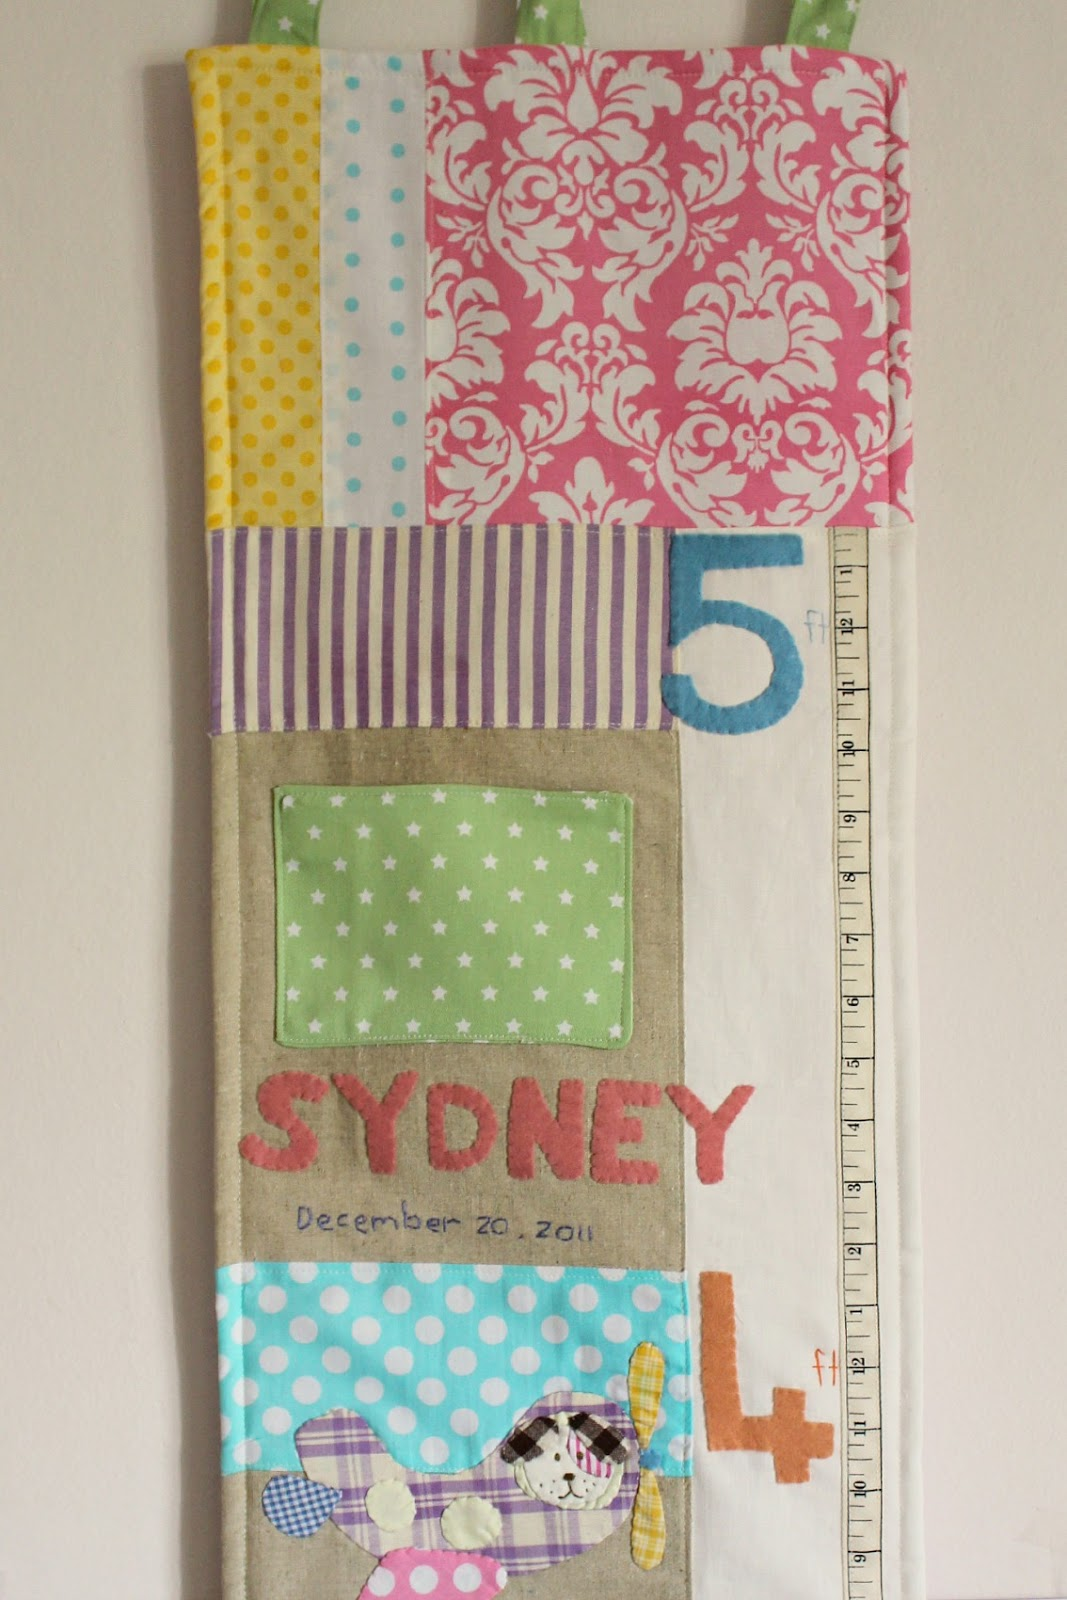 Roxy creations growth charts for twins growth charts for twins nvjuhfo Choice Image